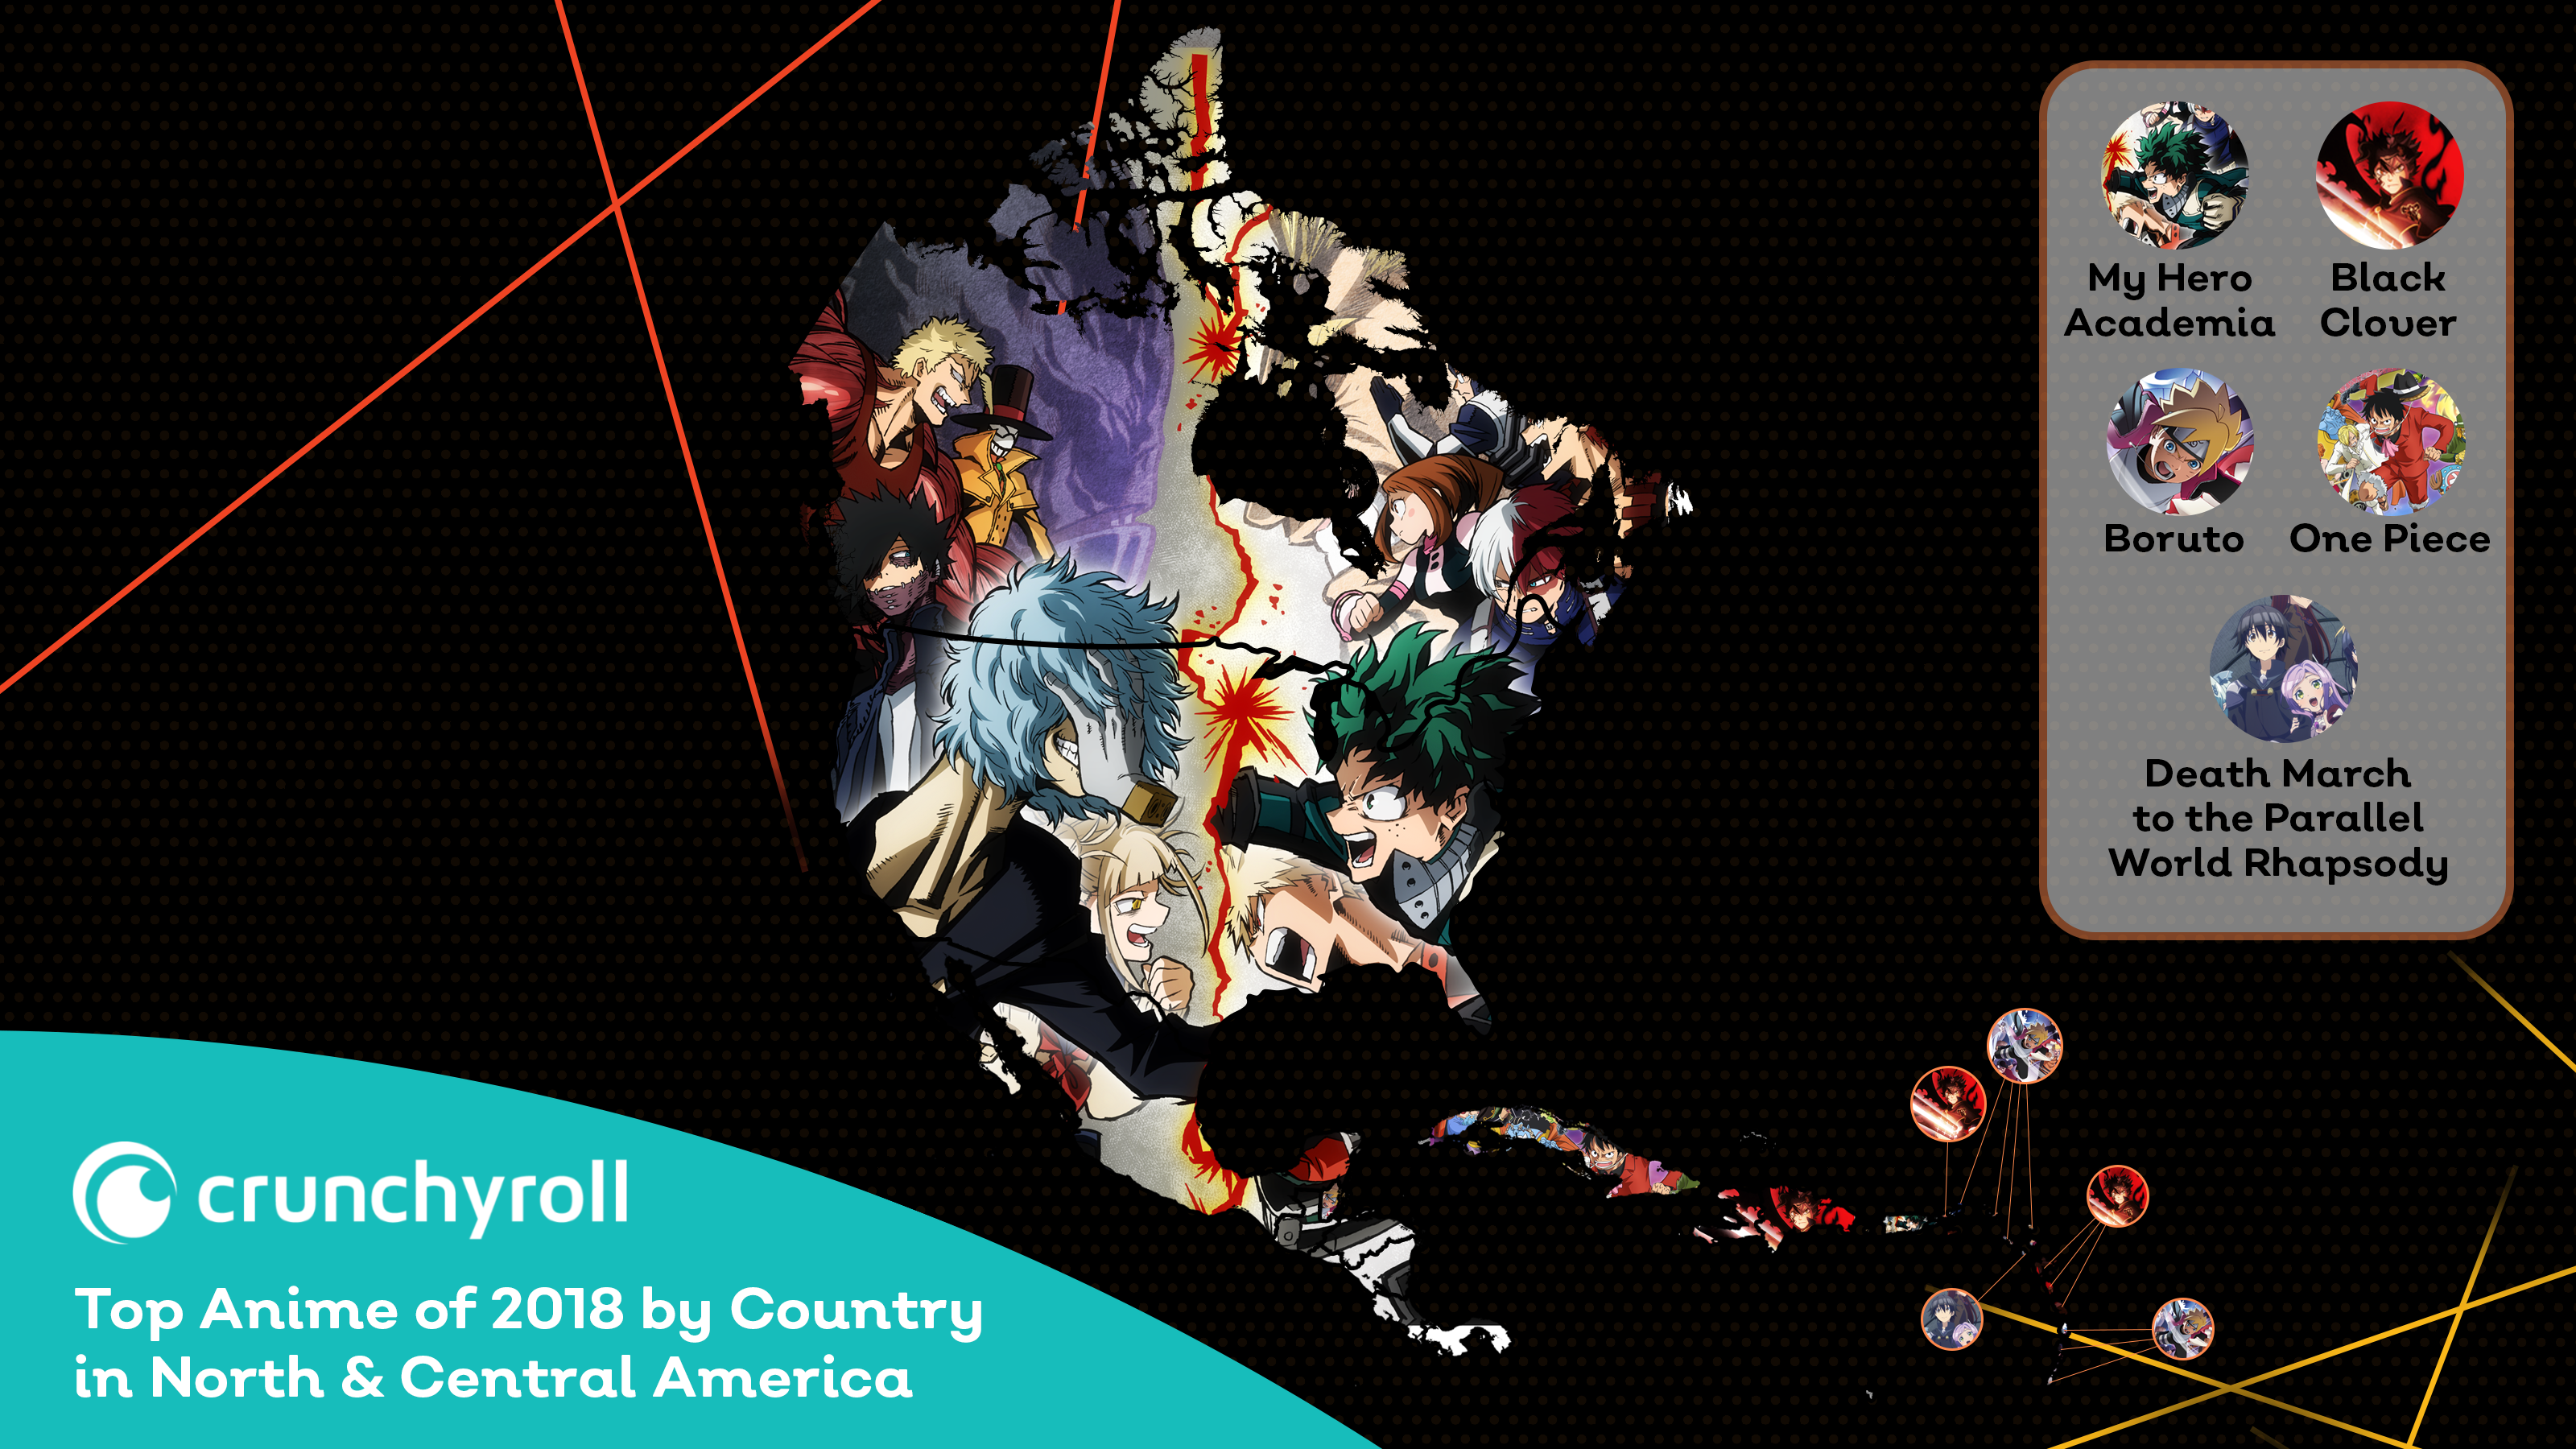 Crunchyroll top 2018 anime north central america america click to enlarge